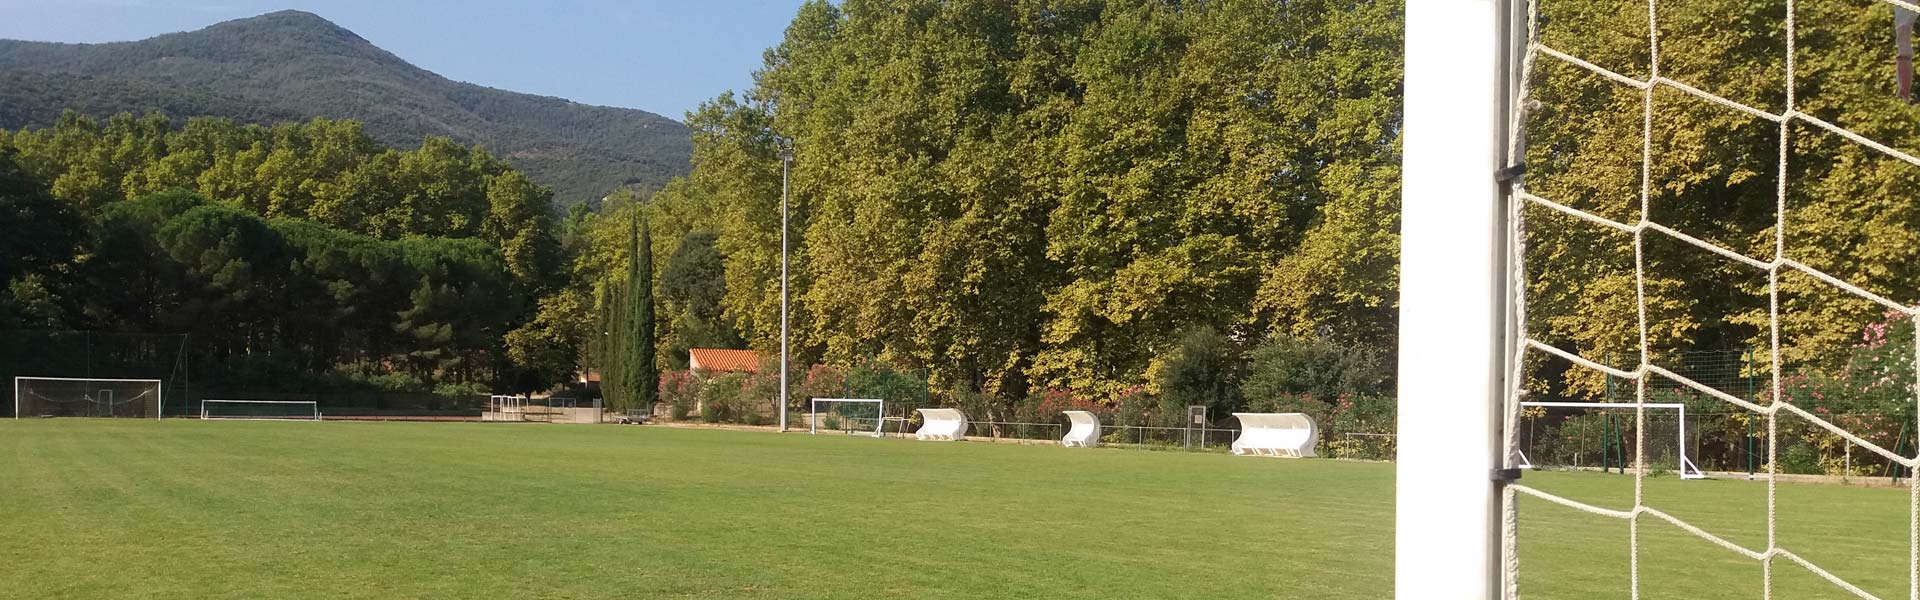 CERET FOOTBALL CLUB